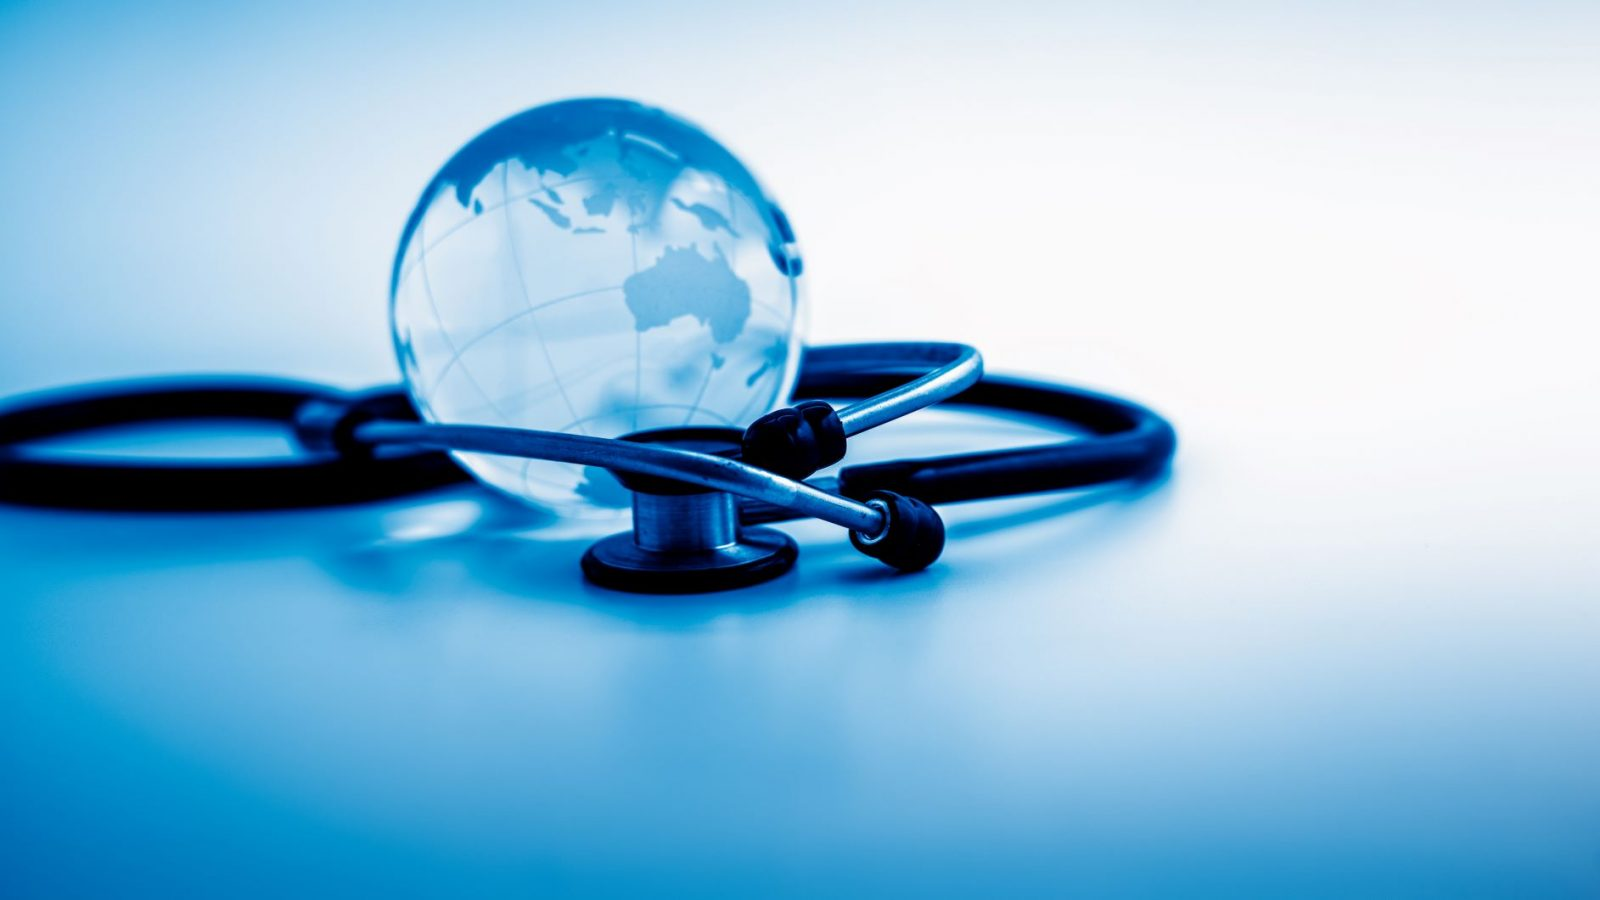 USTDA supports healthcare infrastructure in emerging markets and promotes U.S. healthcare infrastructure exports